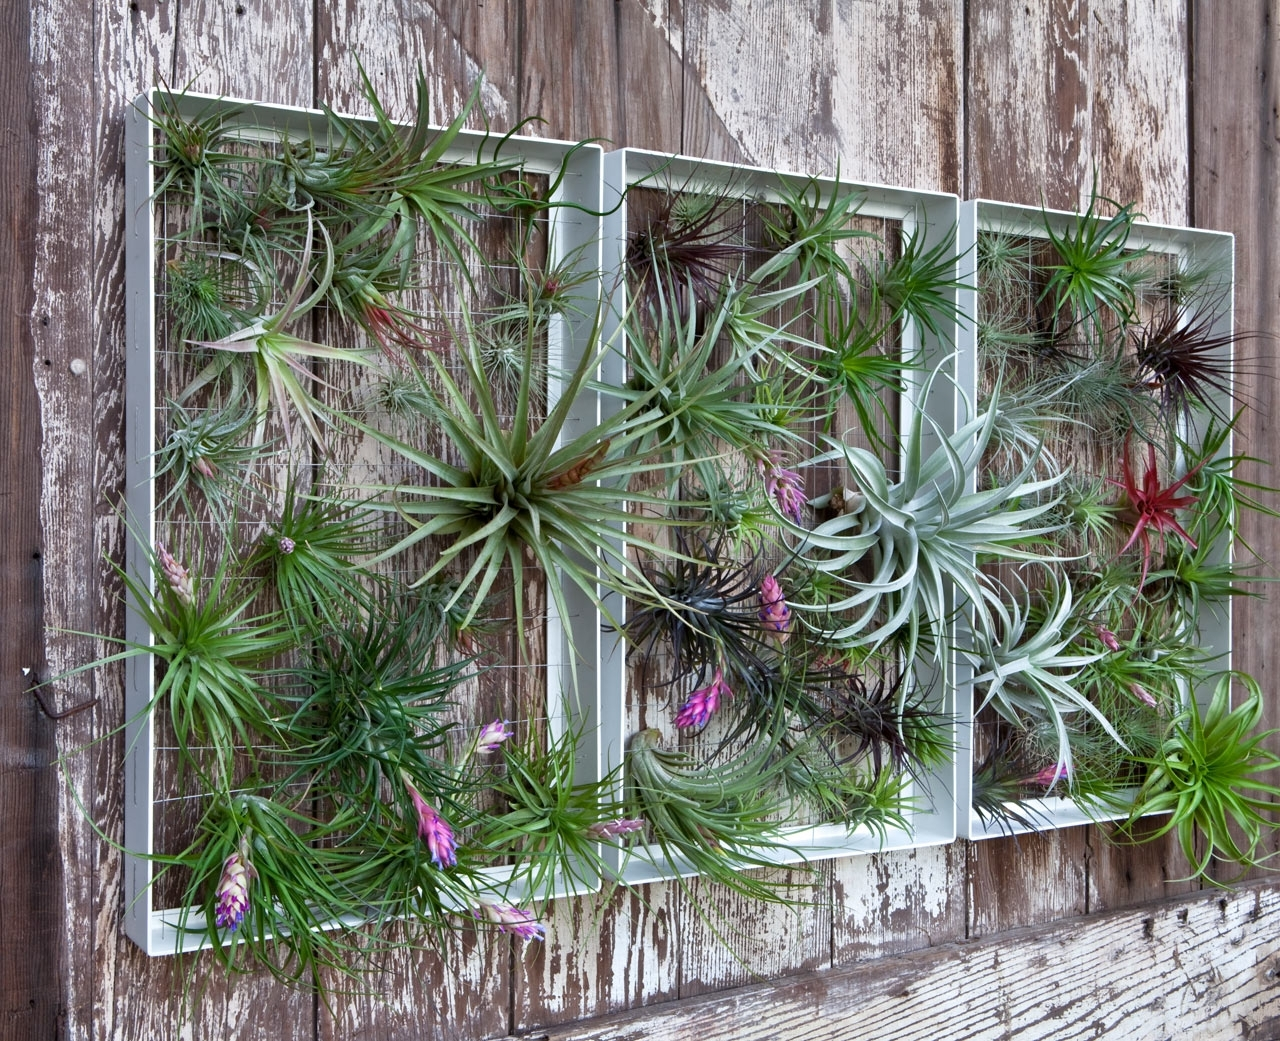 Living Wall Art Vertical Garden Framesairplantman – Design Milk With Regard To 2017 Living Wall Art (View 12 of 20)